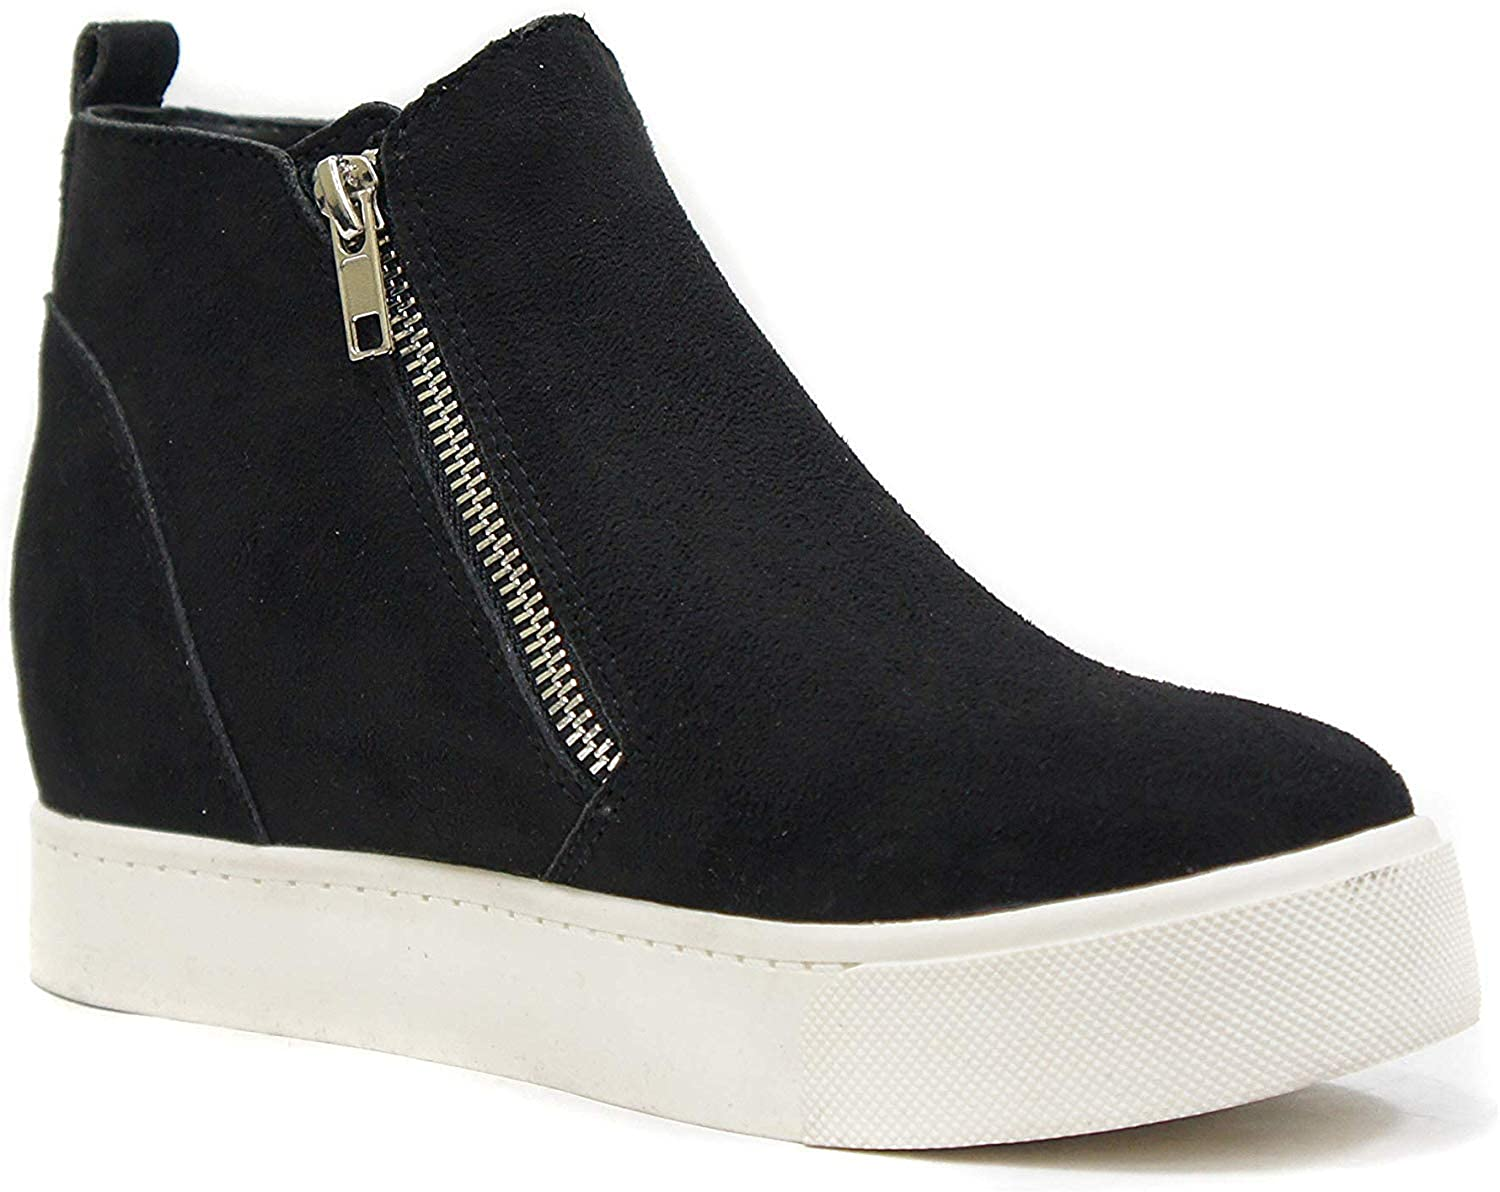 Soda Womens Taylor Nubuck High Top Slip On Fashion Sneakers